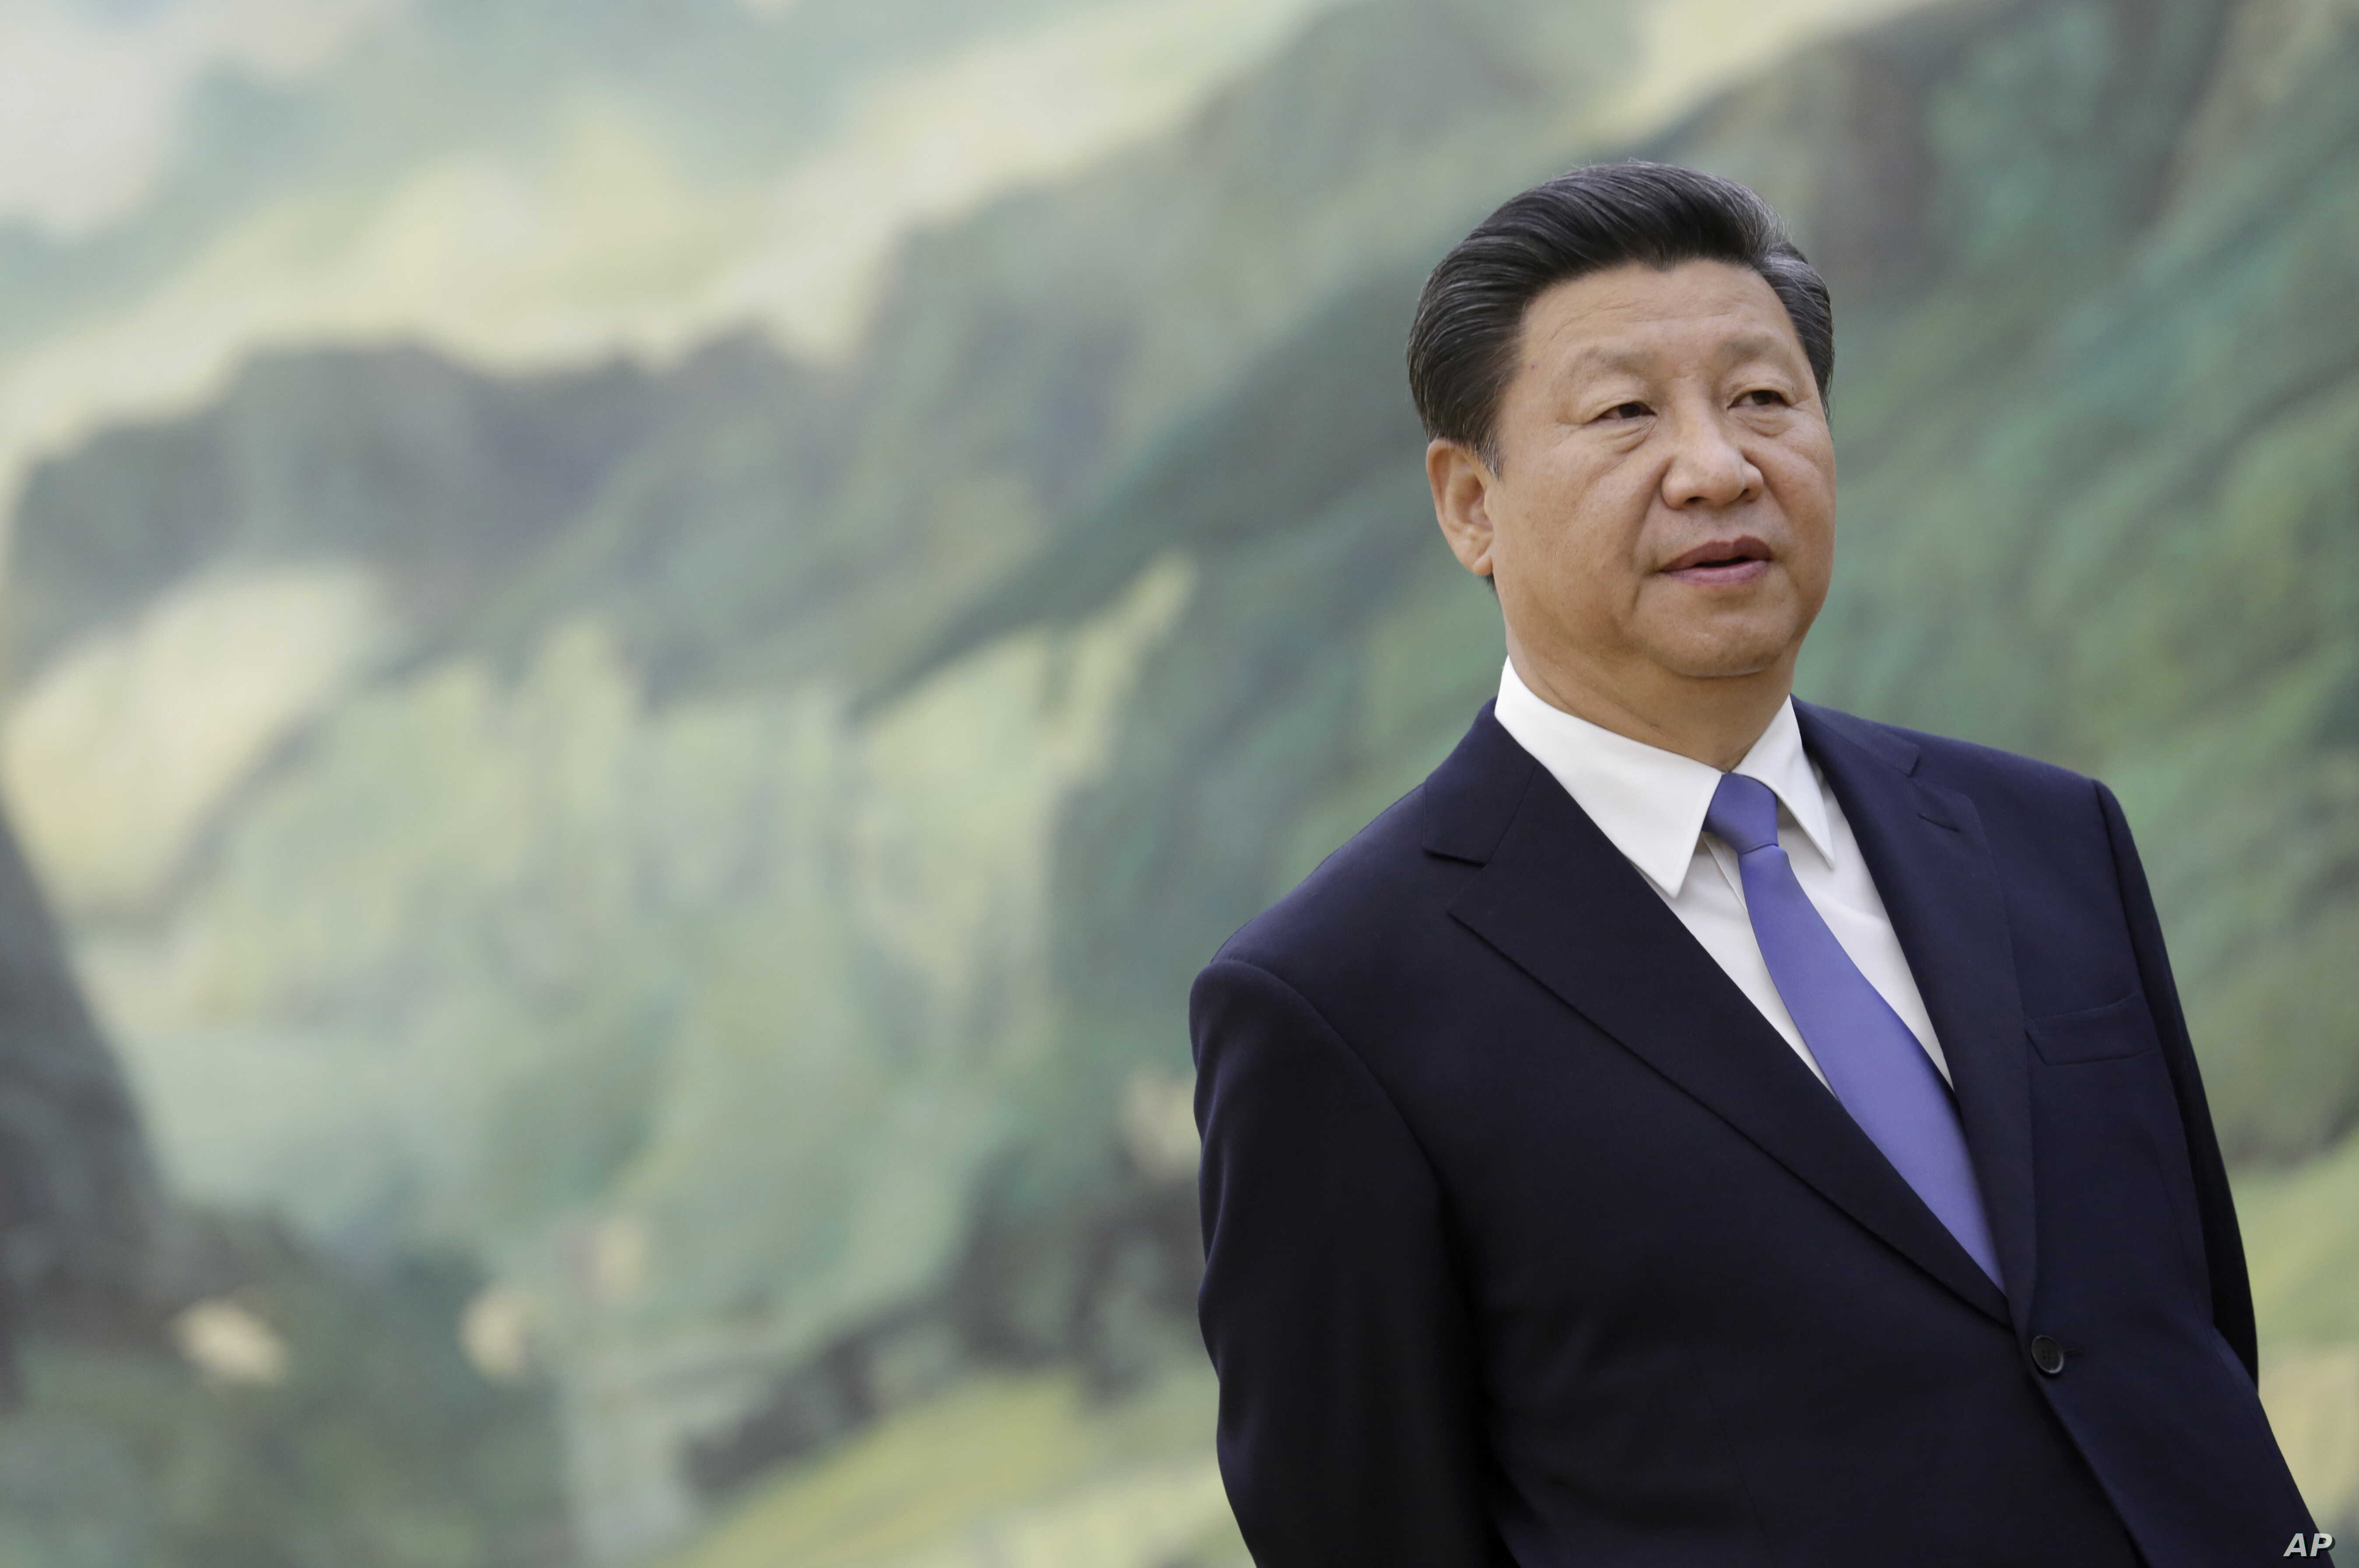 Chinese President Xi Jinping stands during a meeting with U.S. National Security Advisor Susan Rice at the Great Hall of the People in Beijing Aug. 28, 2015.